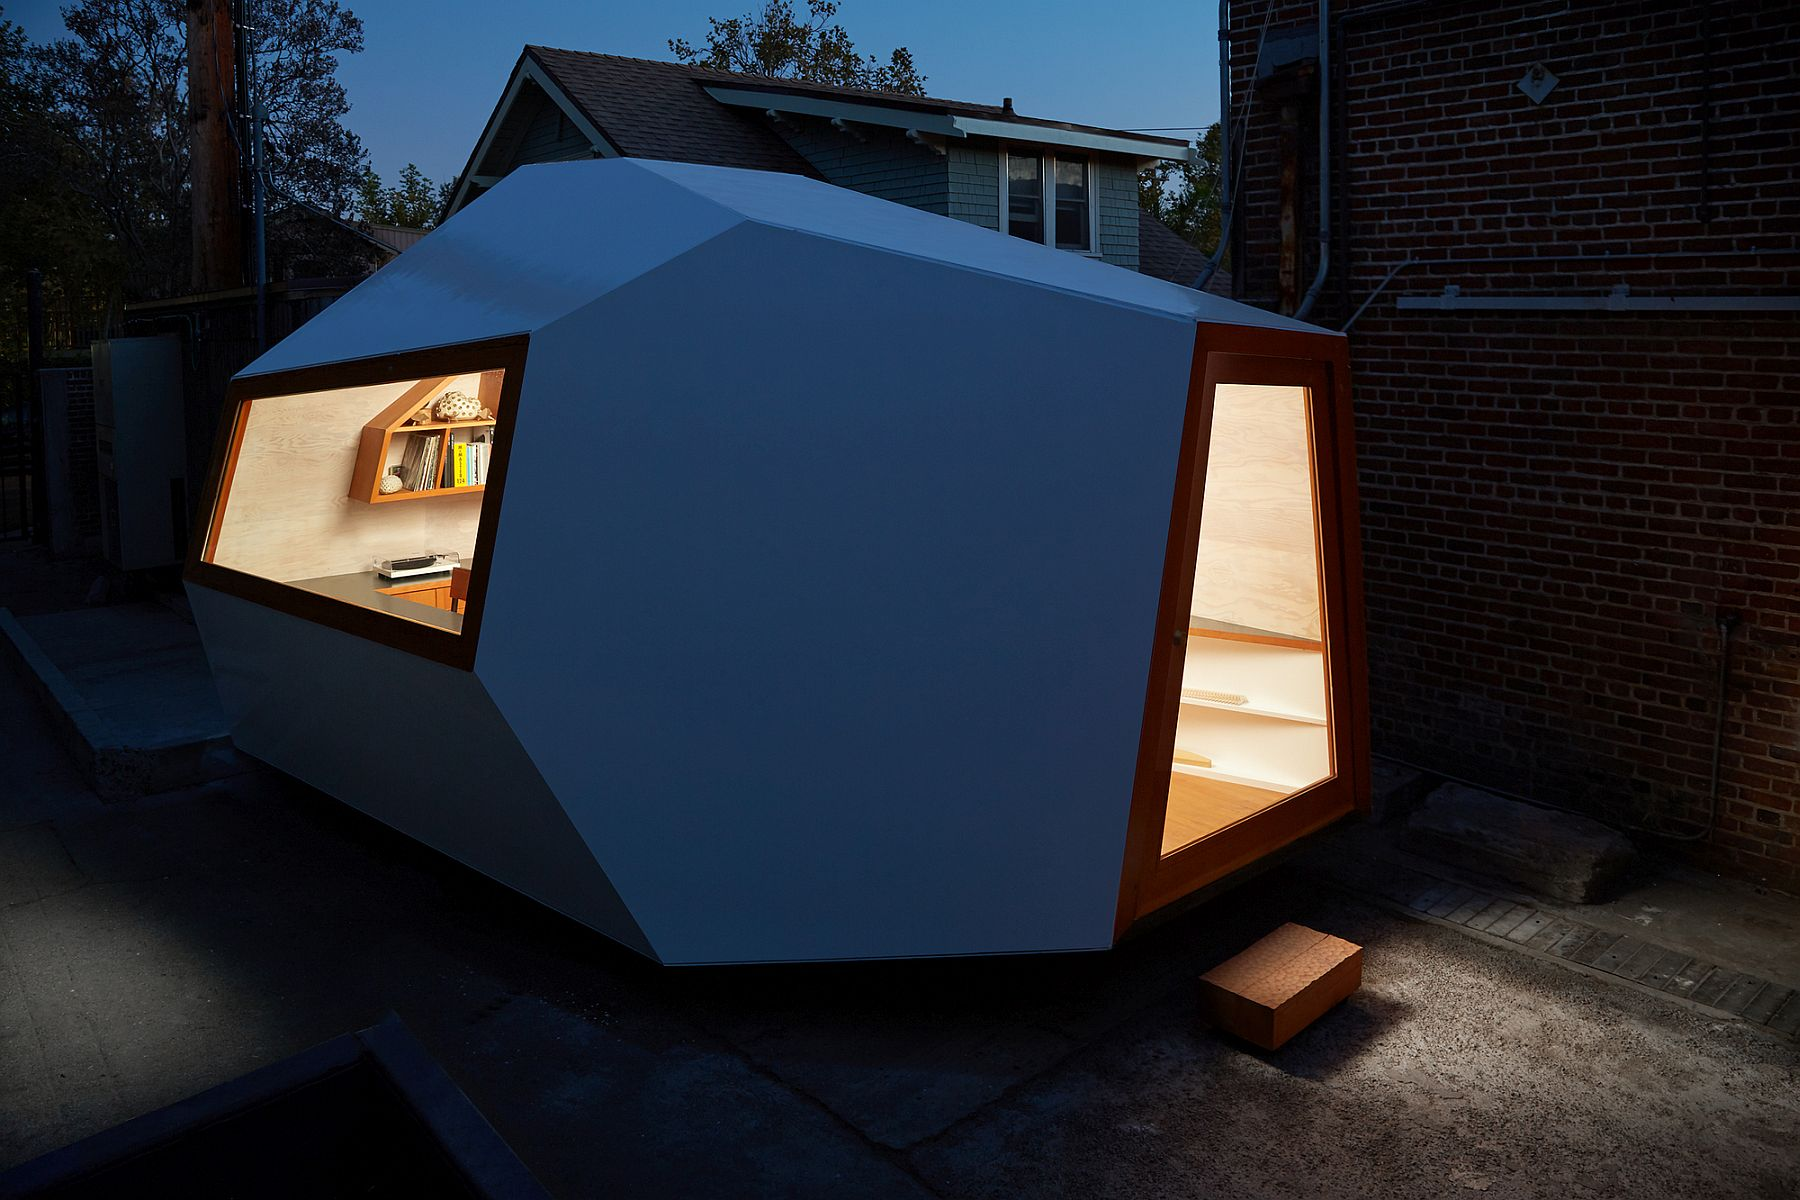 Small scale sustainable design structure built to reimagine homes and offices